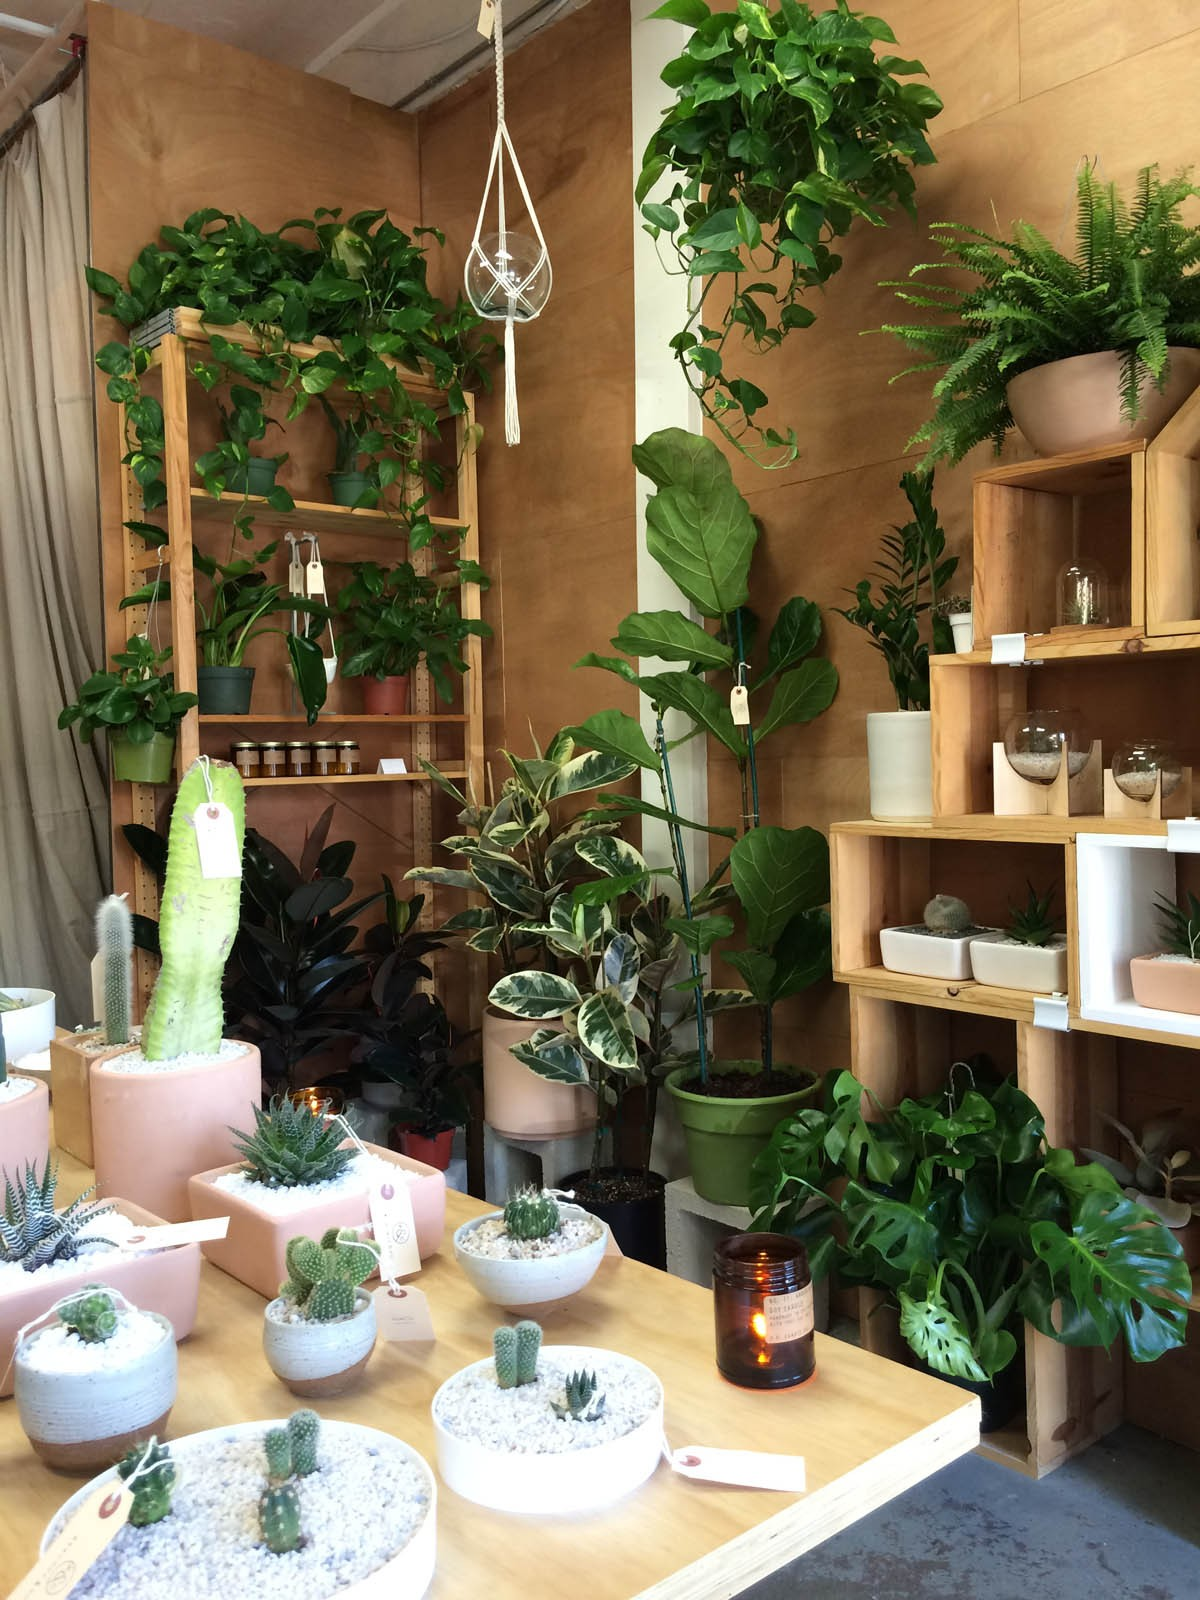 Astonishing Peacock Co Offers Hip House Plants From Its Long Beach Home Remodeling Inspirations Basidirectenergyitoicom